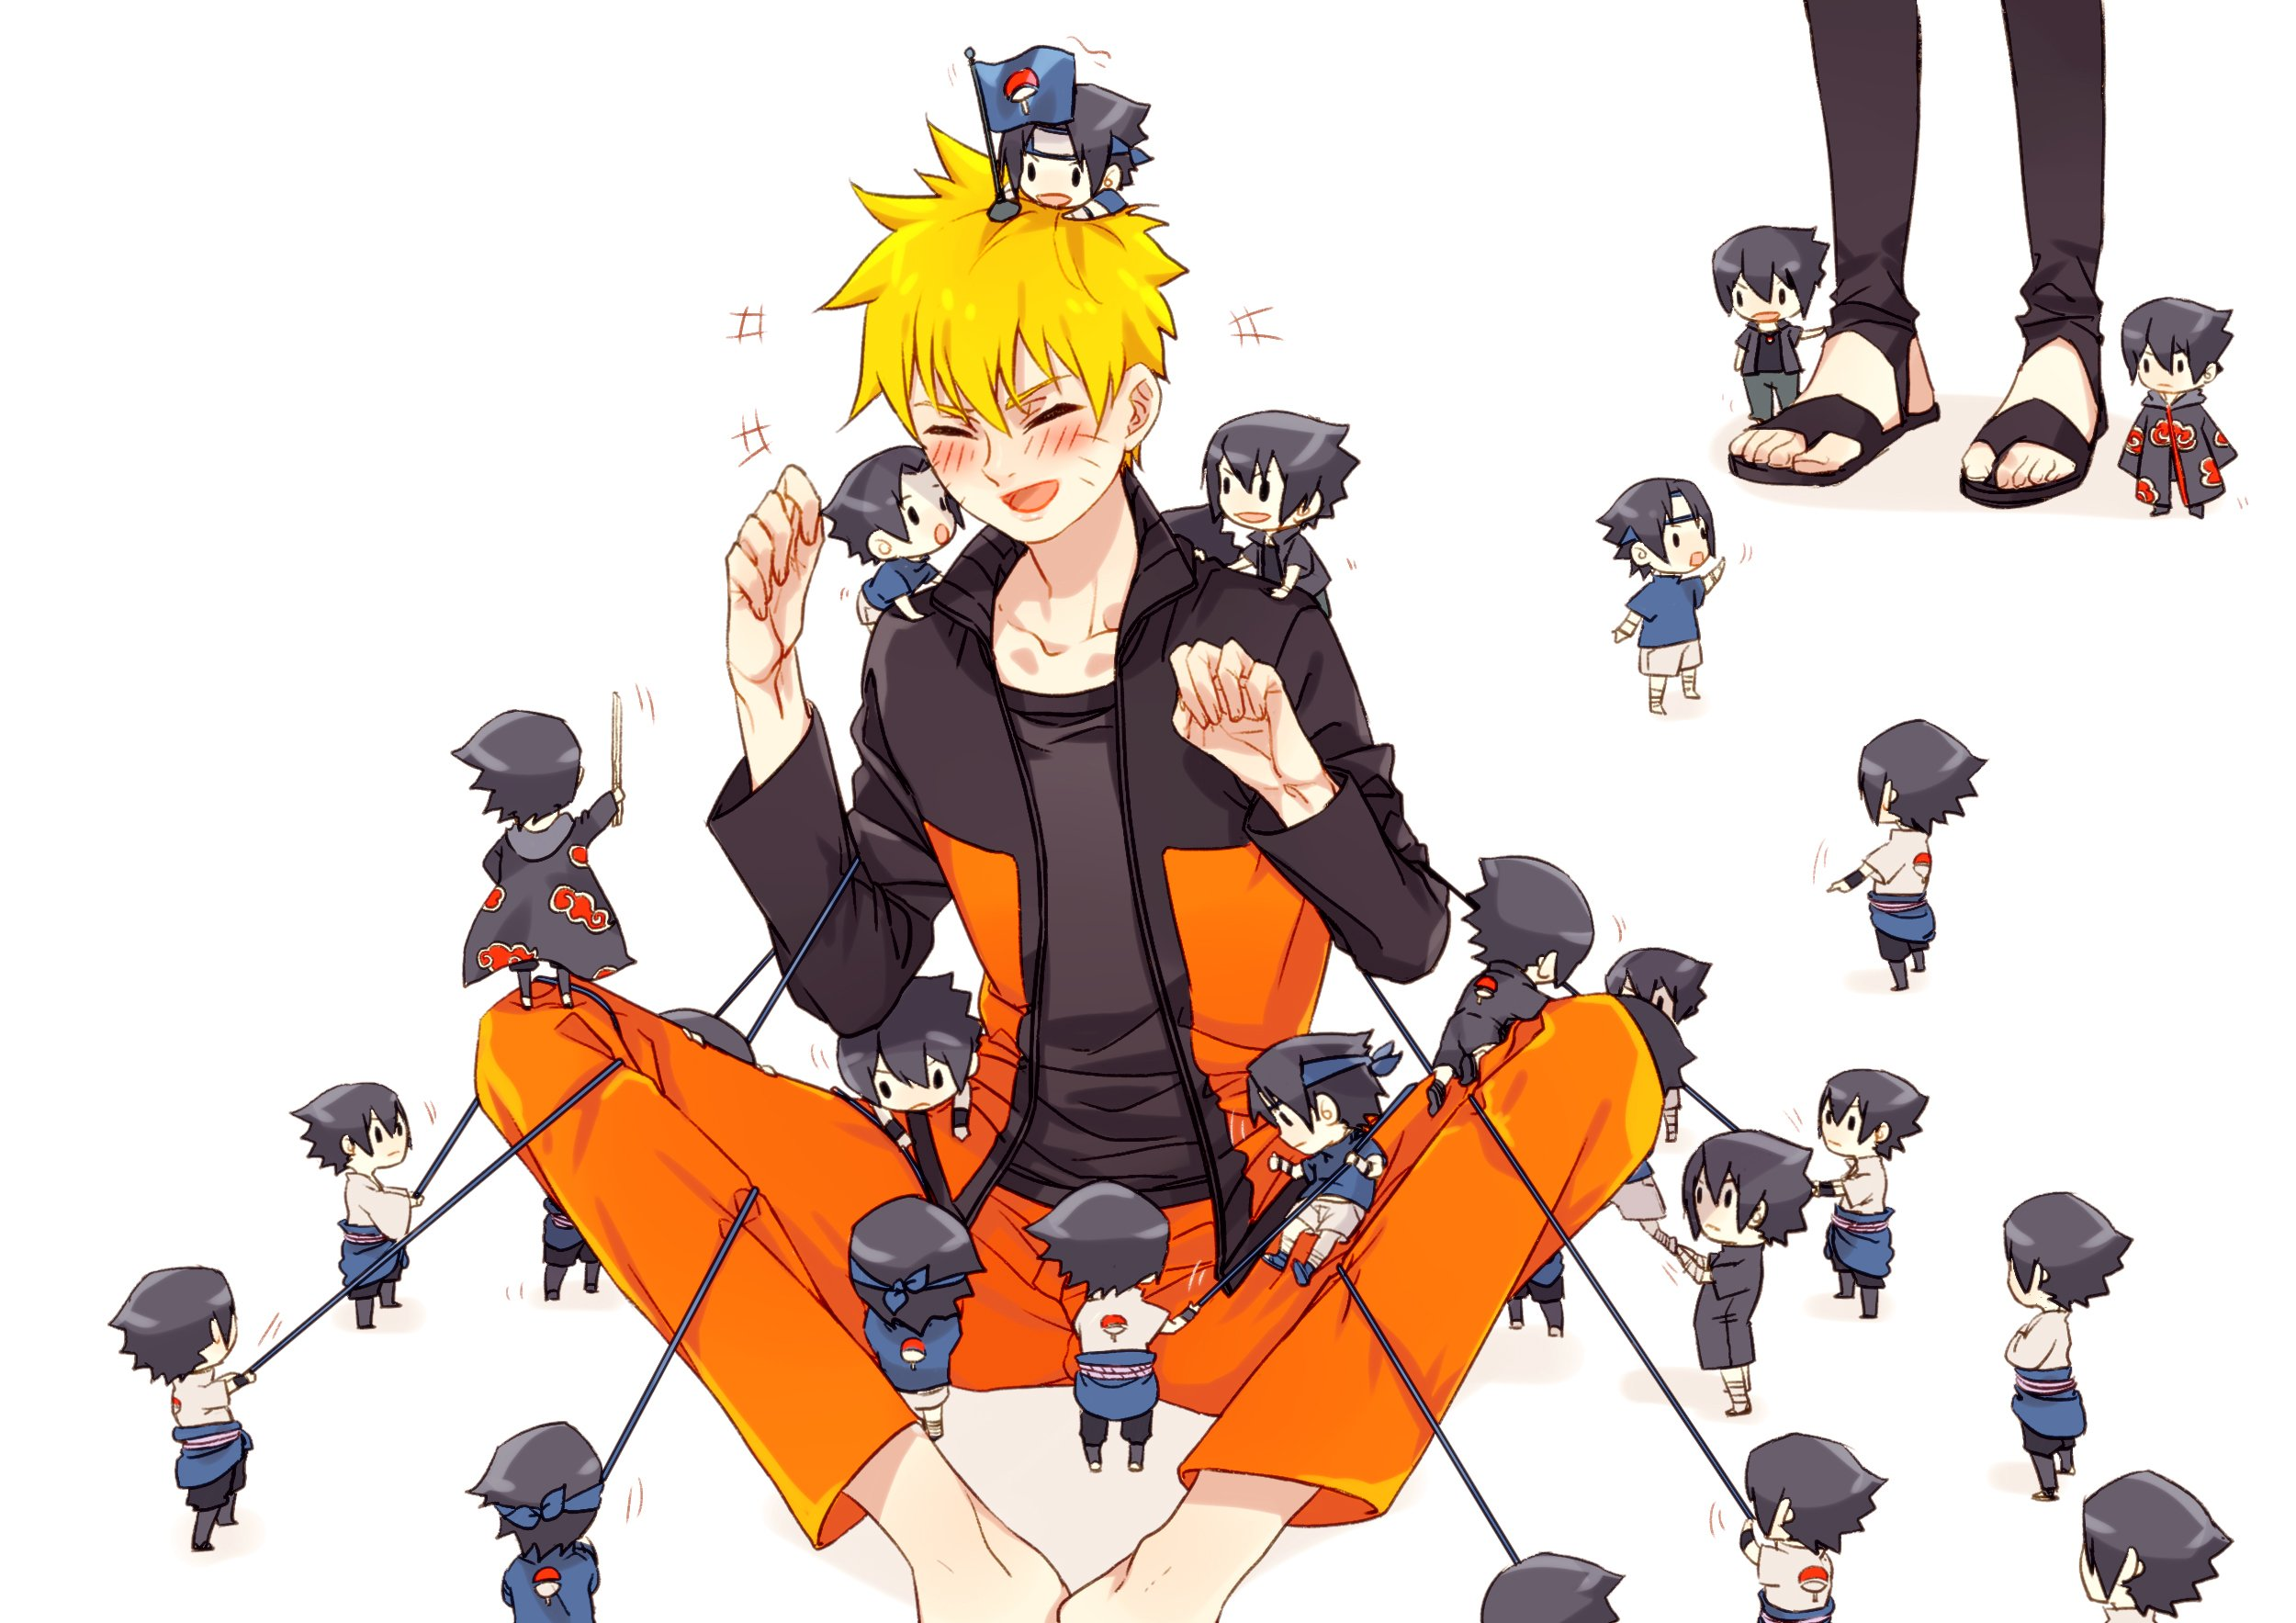 moreover Chibi Minato Hokage 601277325 together with XdMn d5Ugu7eVE4n7KPgz67QoMz1P0Z8PJ as well Boruto The Next Generation Shino Aburame 692462668 besides Team 7. on boruto uzumaki hokage